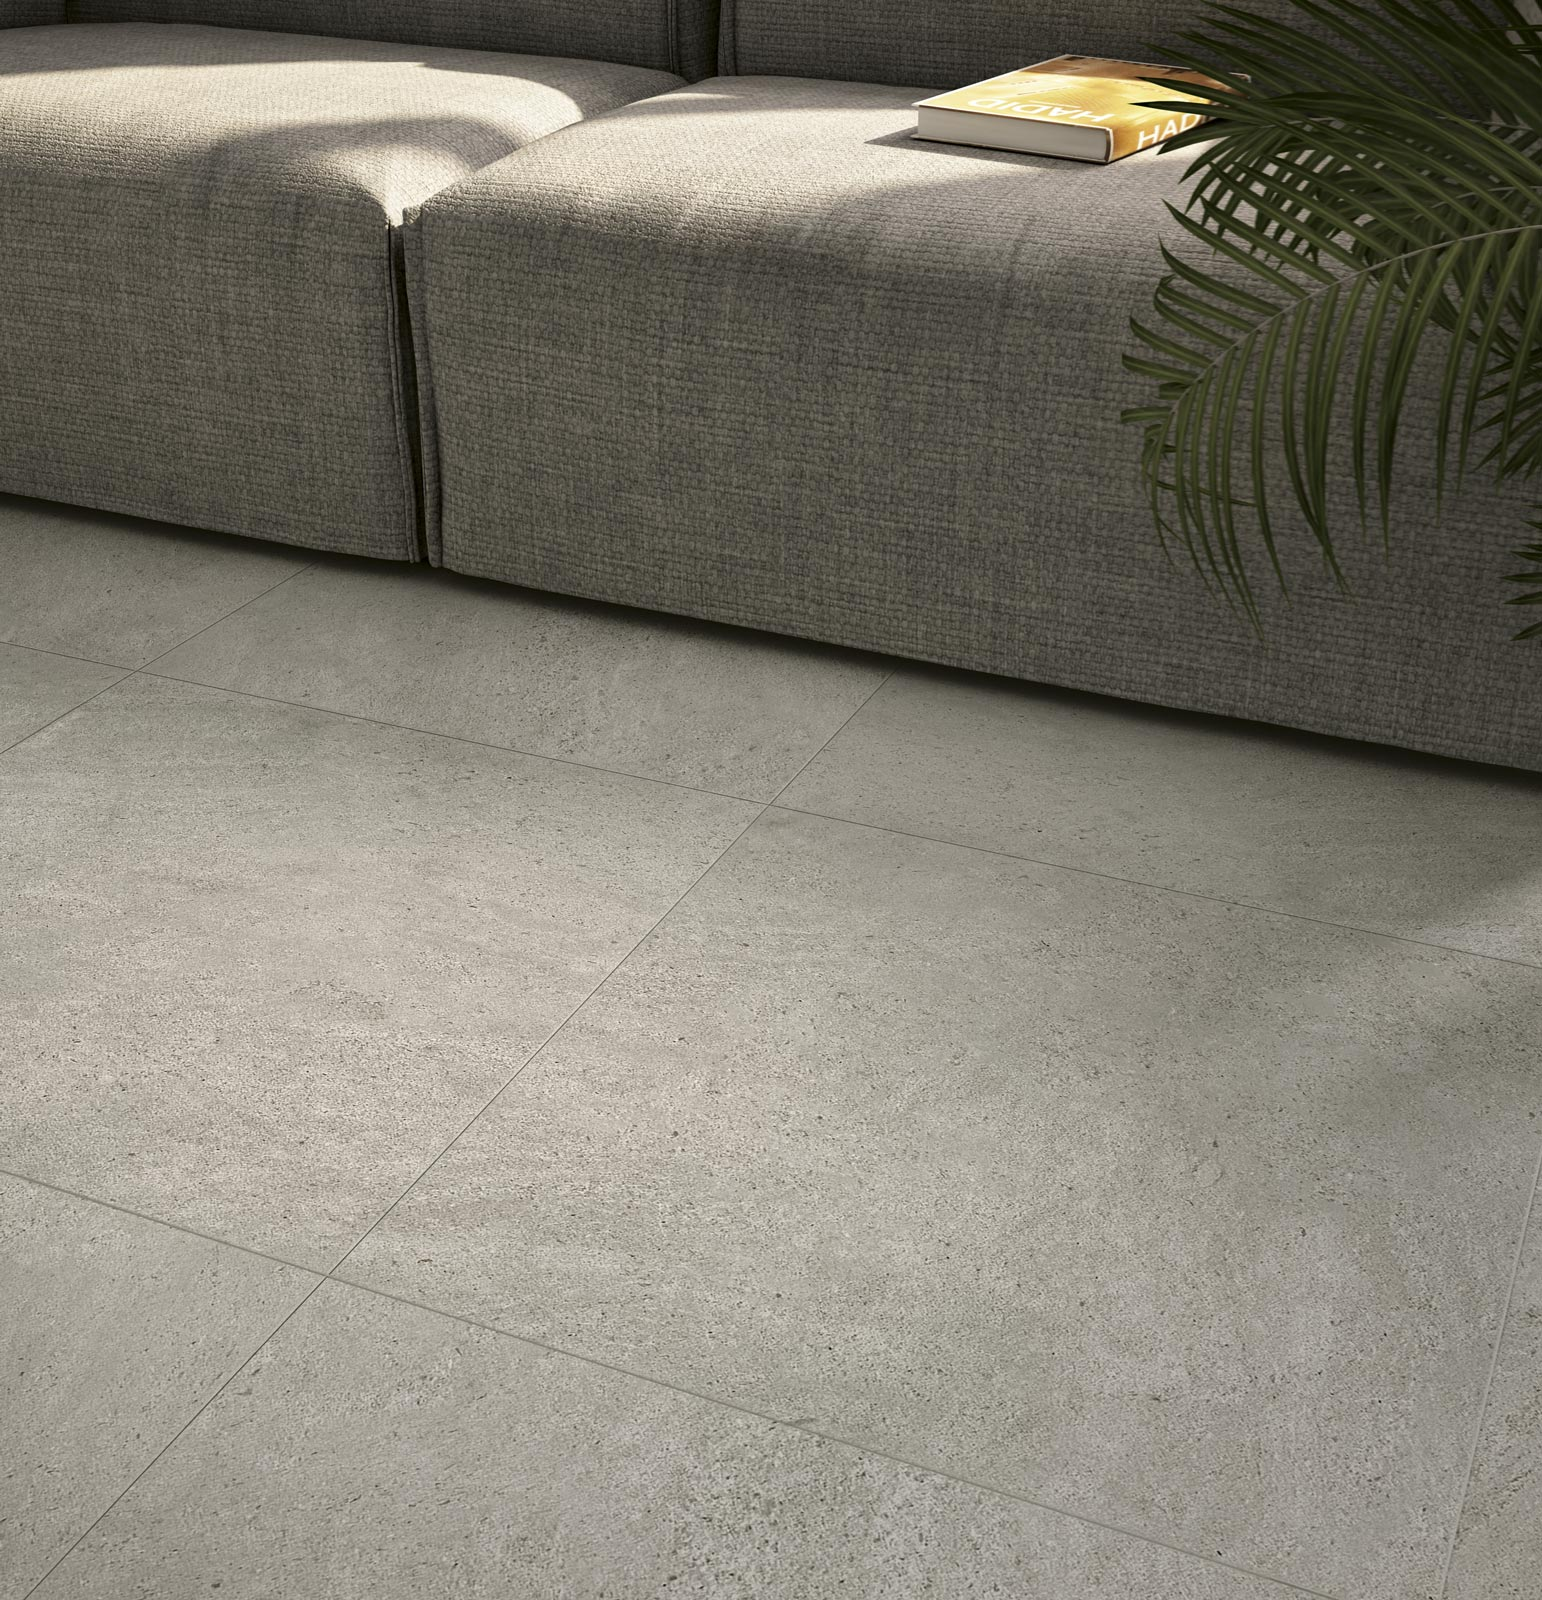 Season collection glazed stoneware for interiors and exteriors ragno for Carrelage beige 60x60